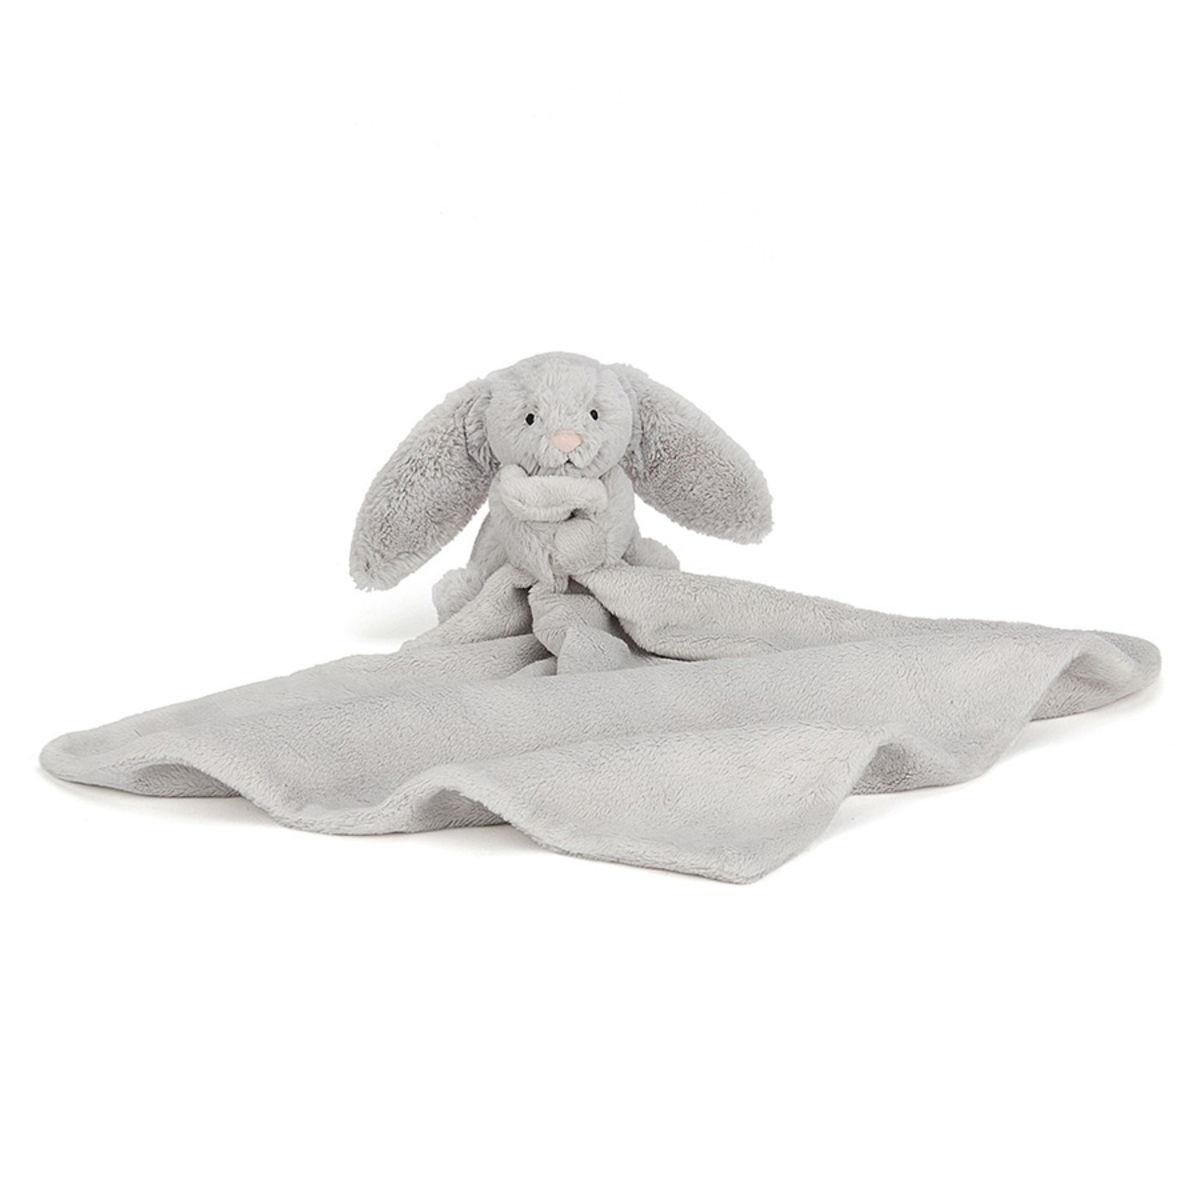 Doudou Bashful Silver Bunny Soother Bashful Silver Bunny Soother